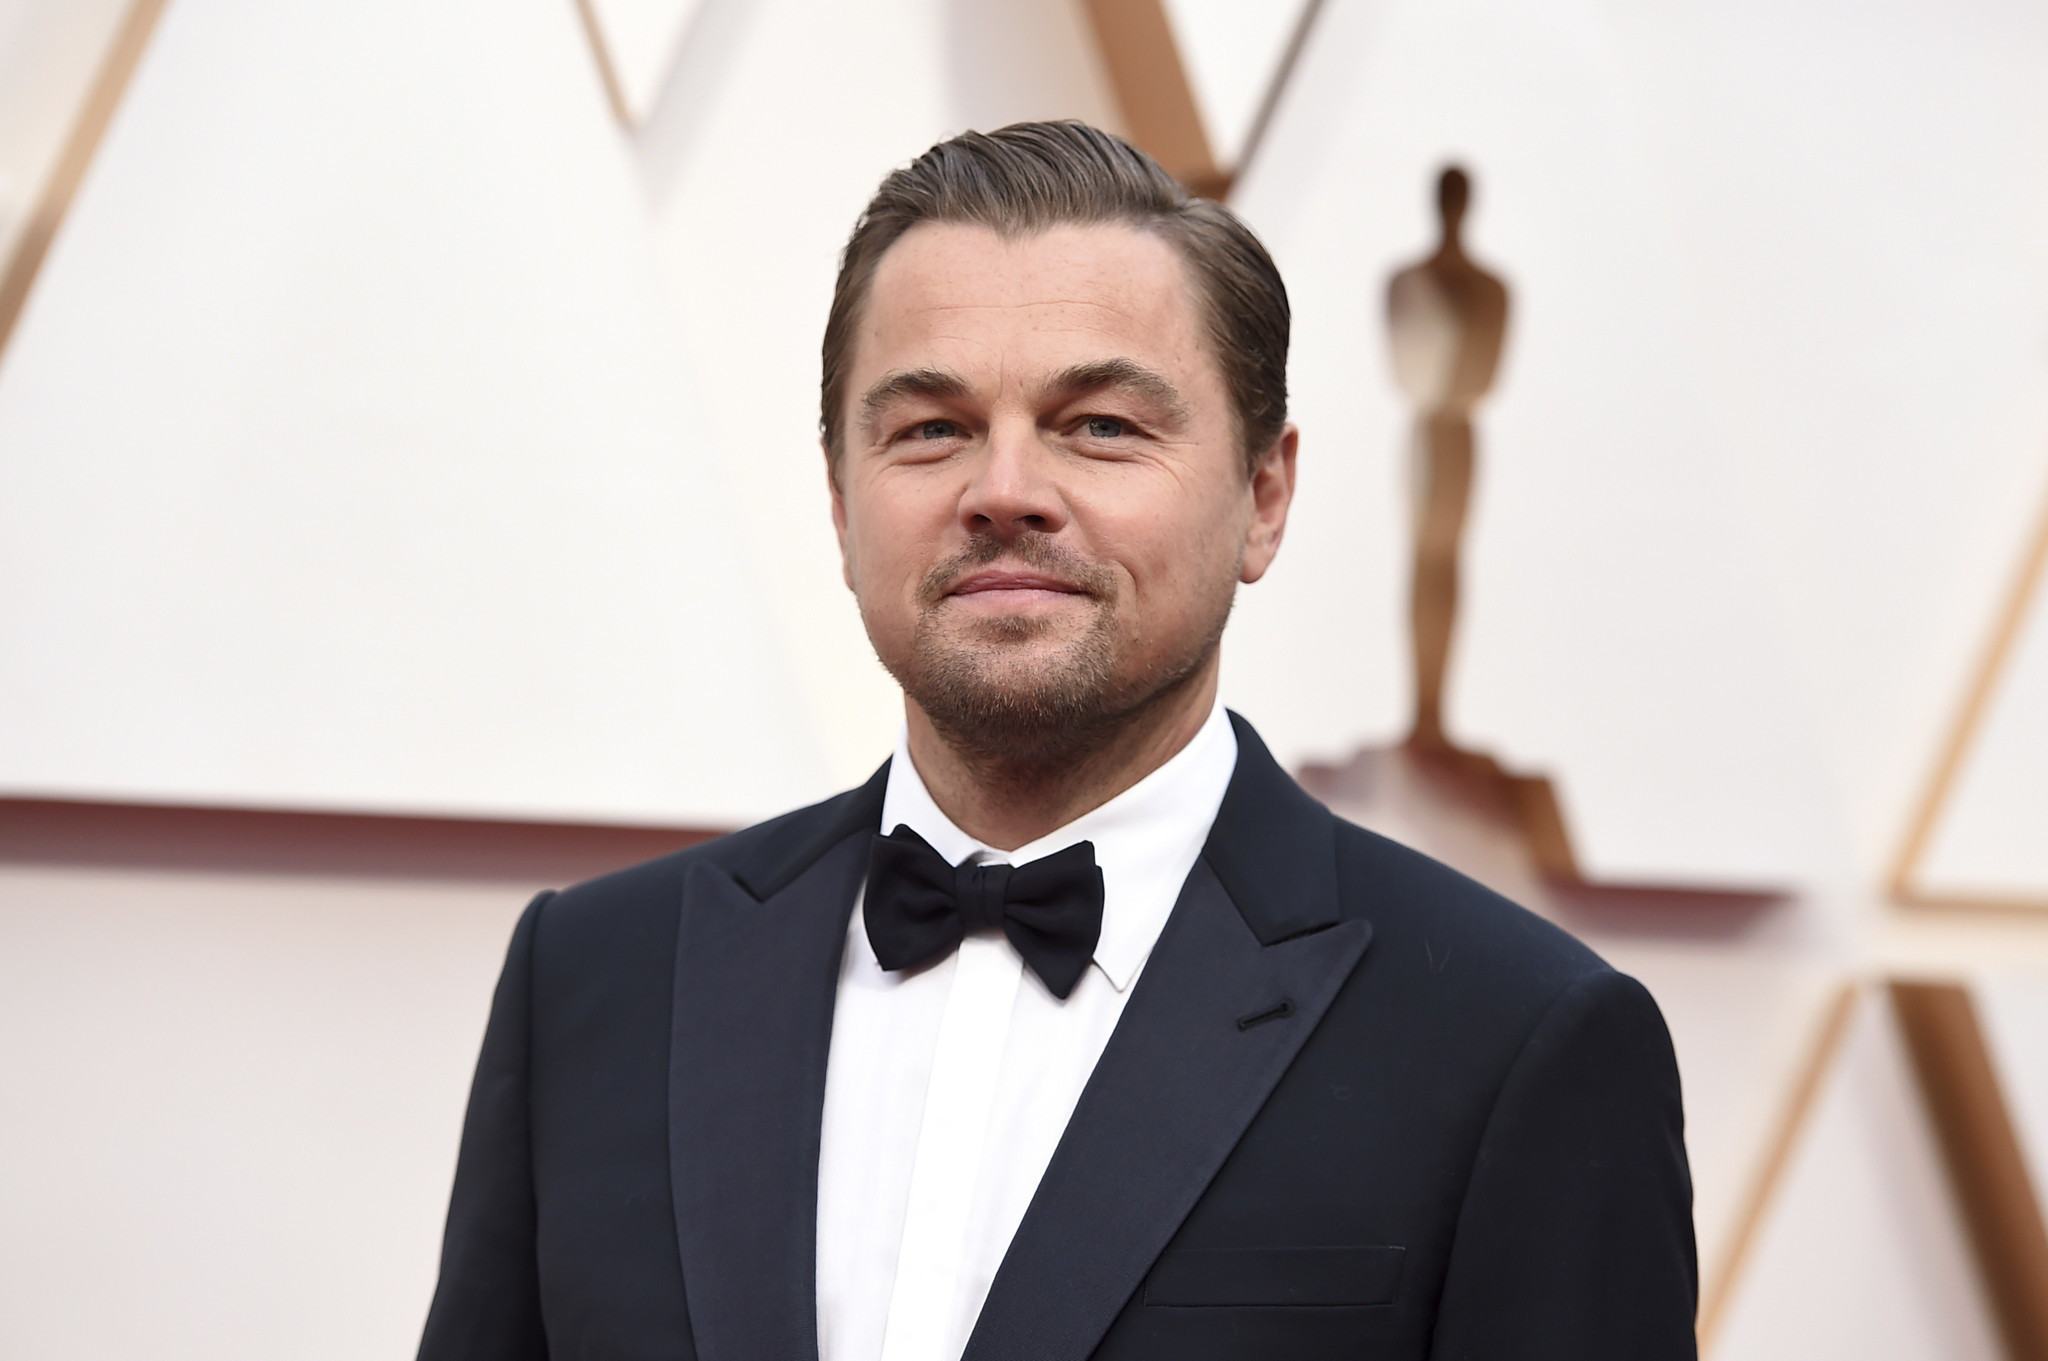 Leonardo DiCaprio helps launch $12M fund helping vulnerable populations amid coronavirus